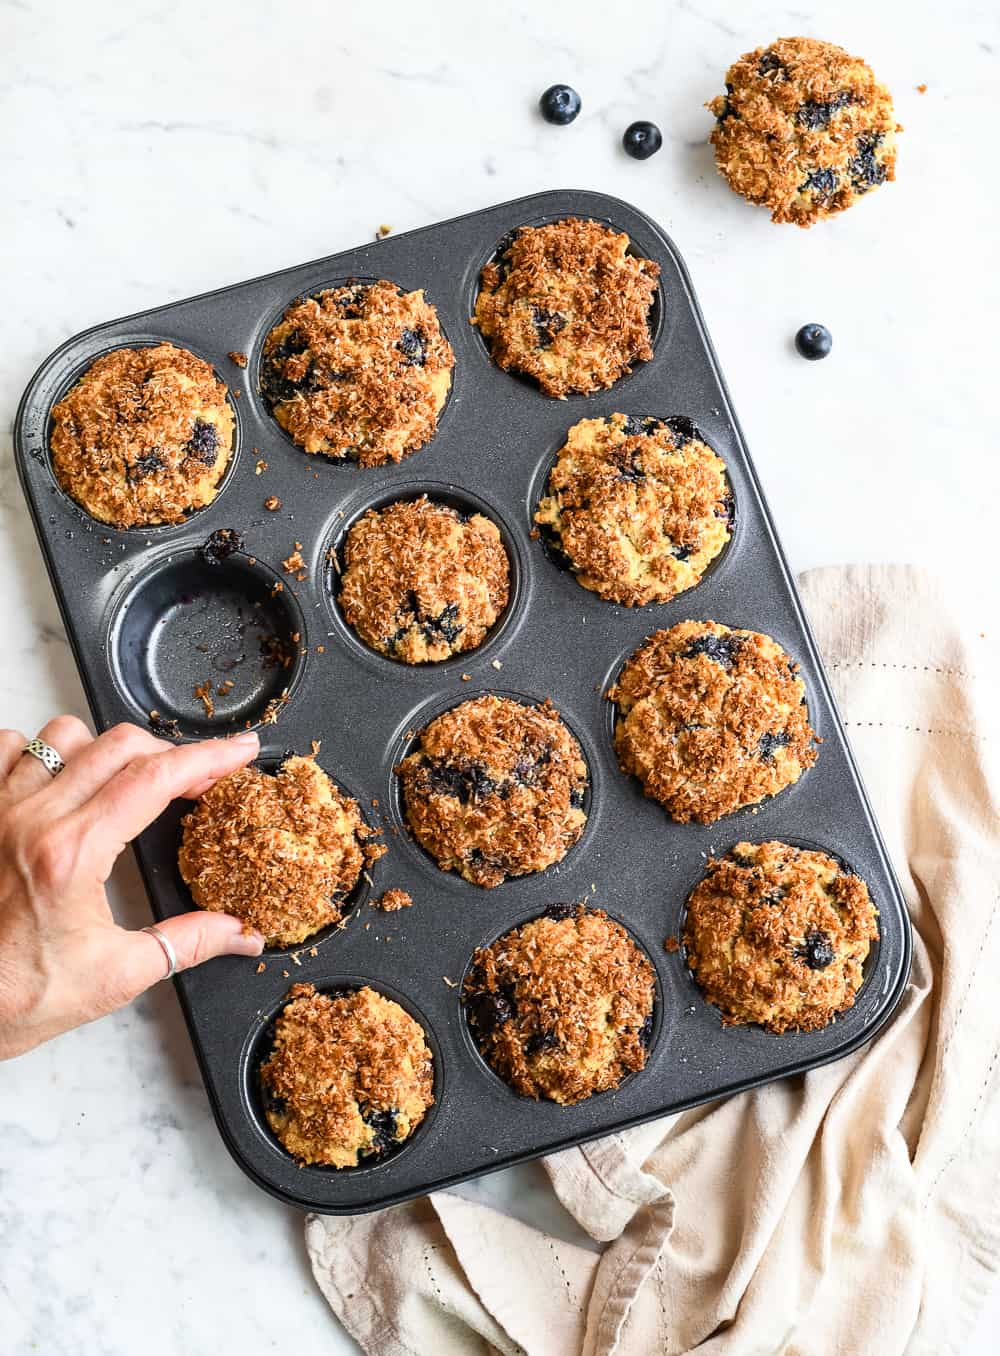 Paleo Blueberry Muffins in Pan